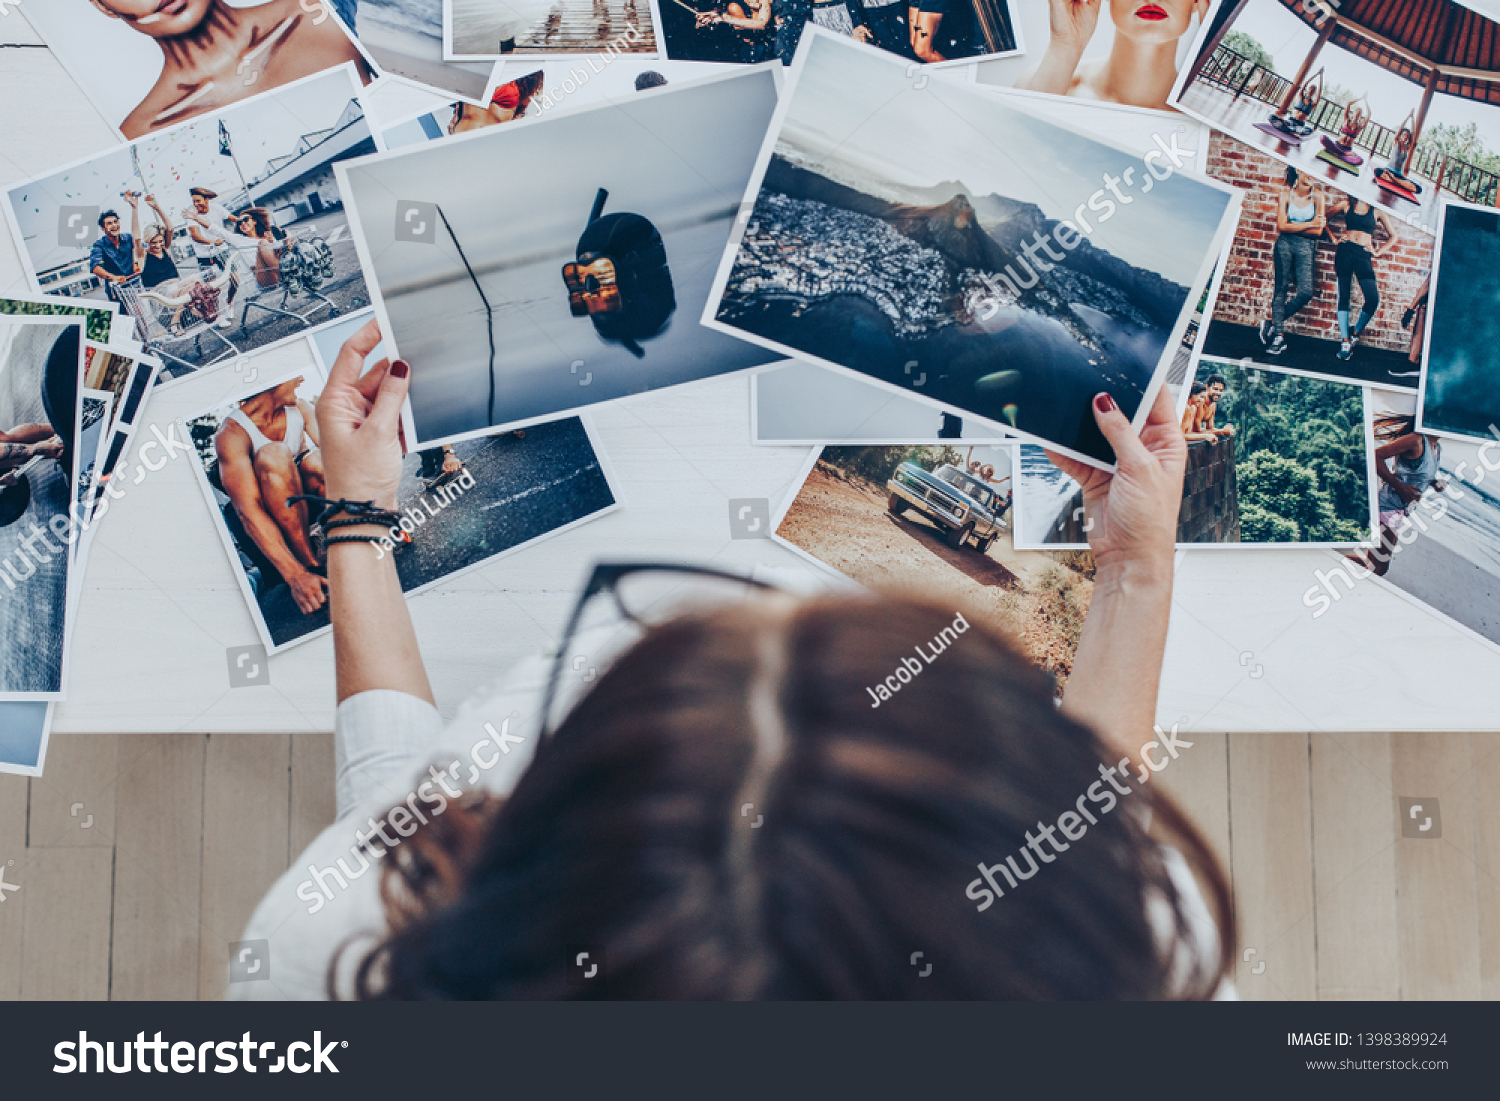 Top view of a woman photographer working in studio. Female photographer checking image prints. #1398389924